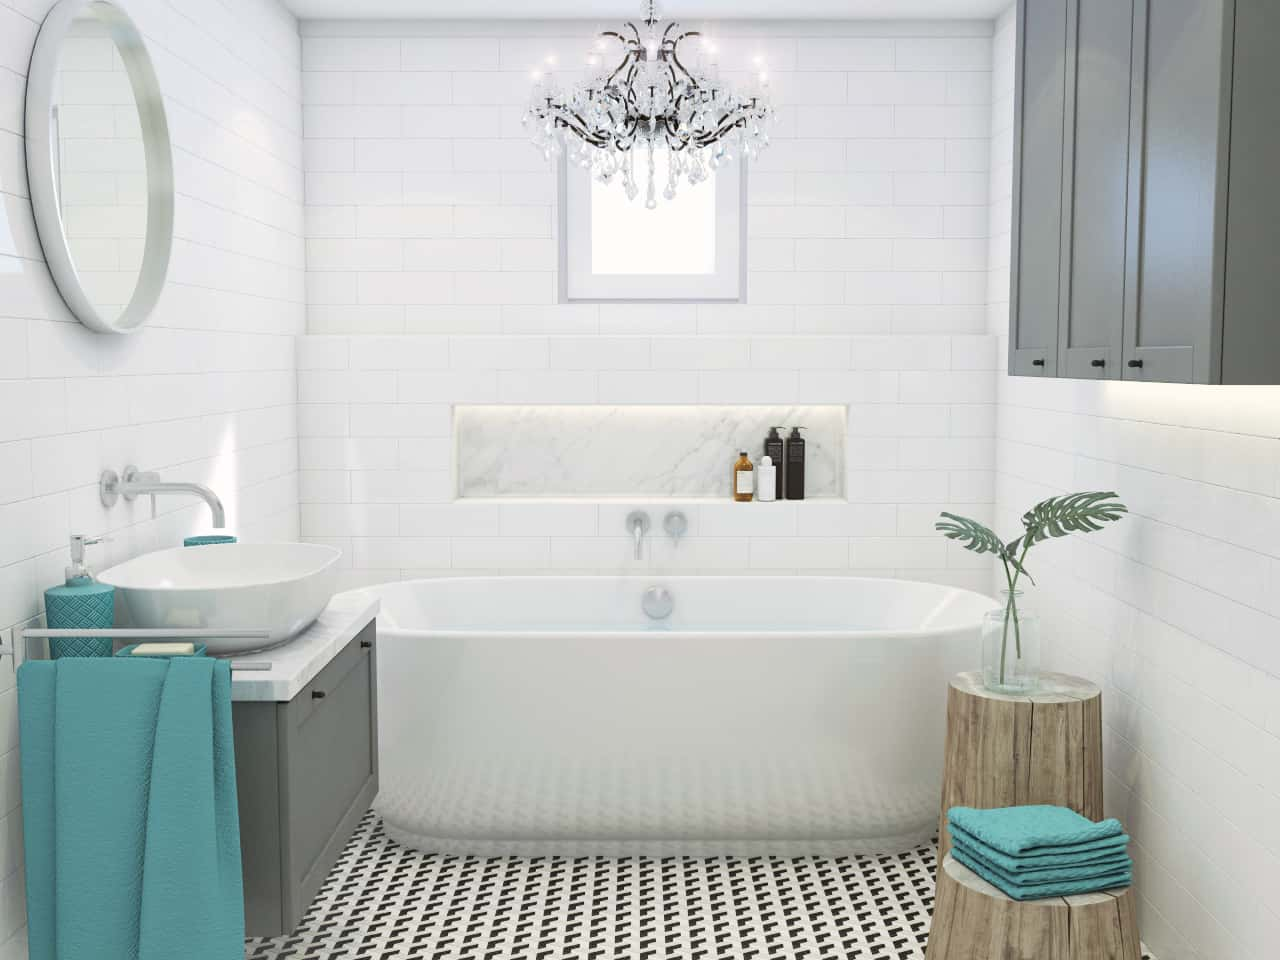 Bathroom in a vintage and glamour style